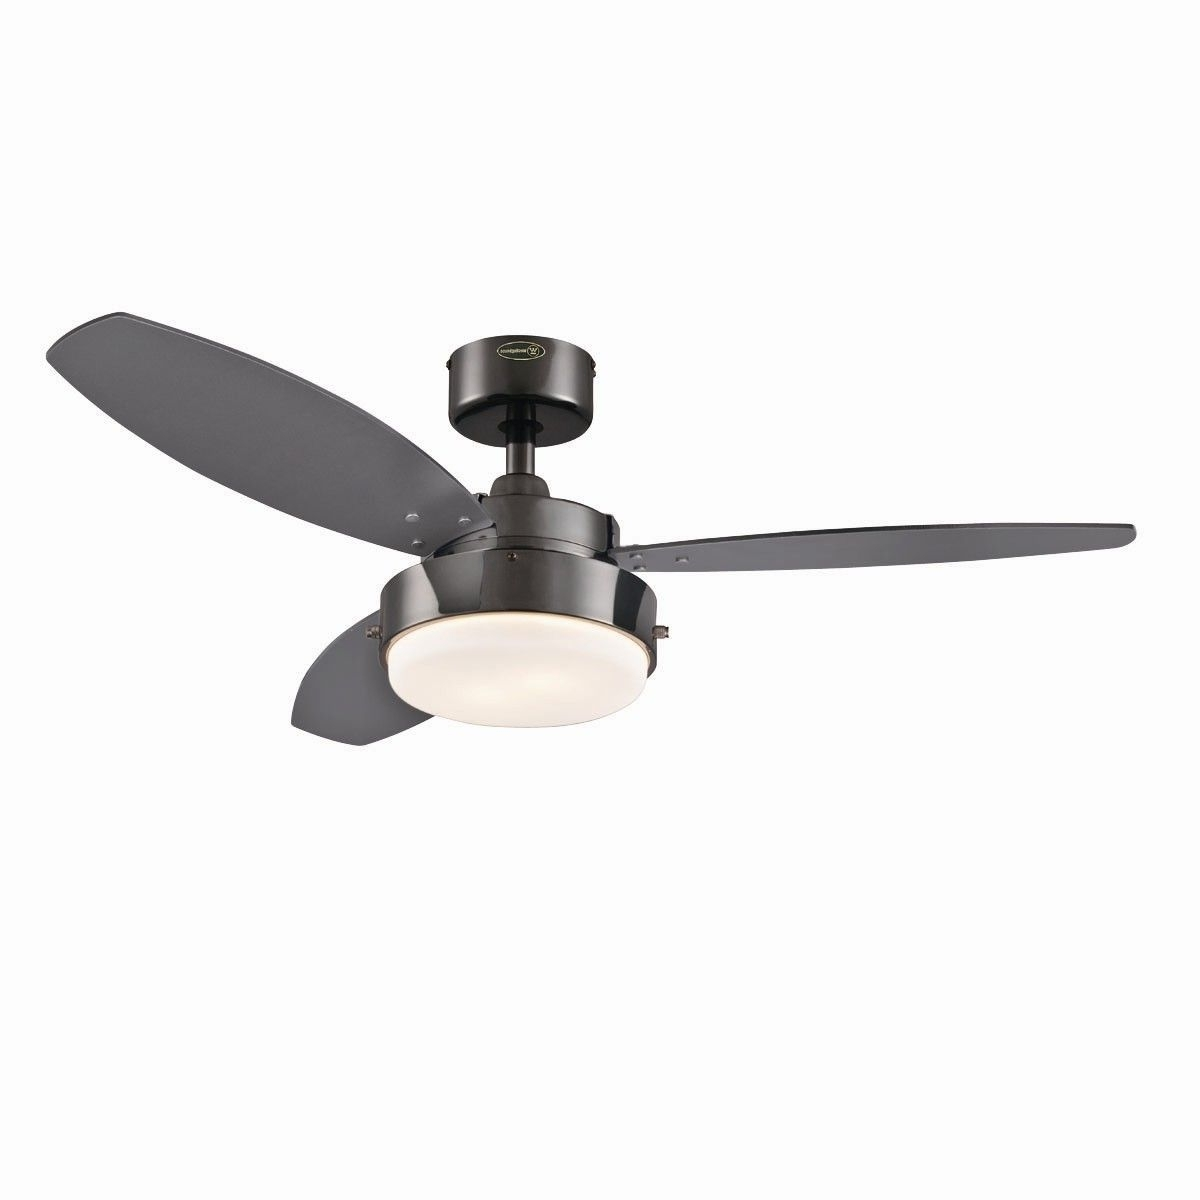 "Latest Wayfair Outdoor Ceiling Fans With Lights In Westinghouse Lighting 42"" Alloy 3 Reversible Blade Ceiling Fan (View 12 of 20)"